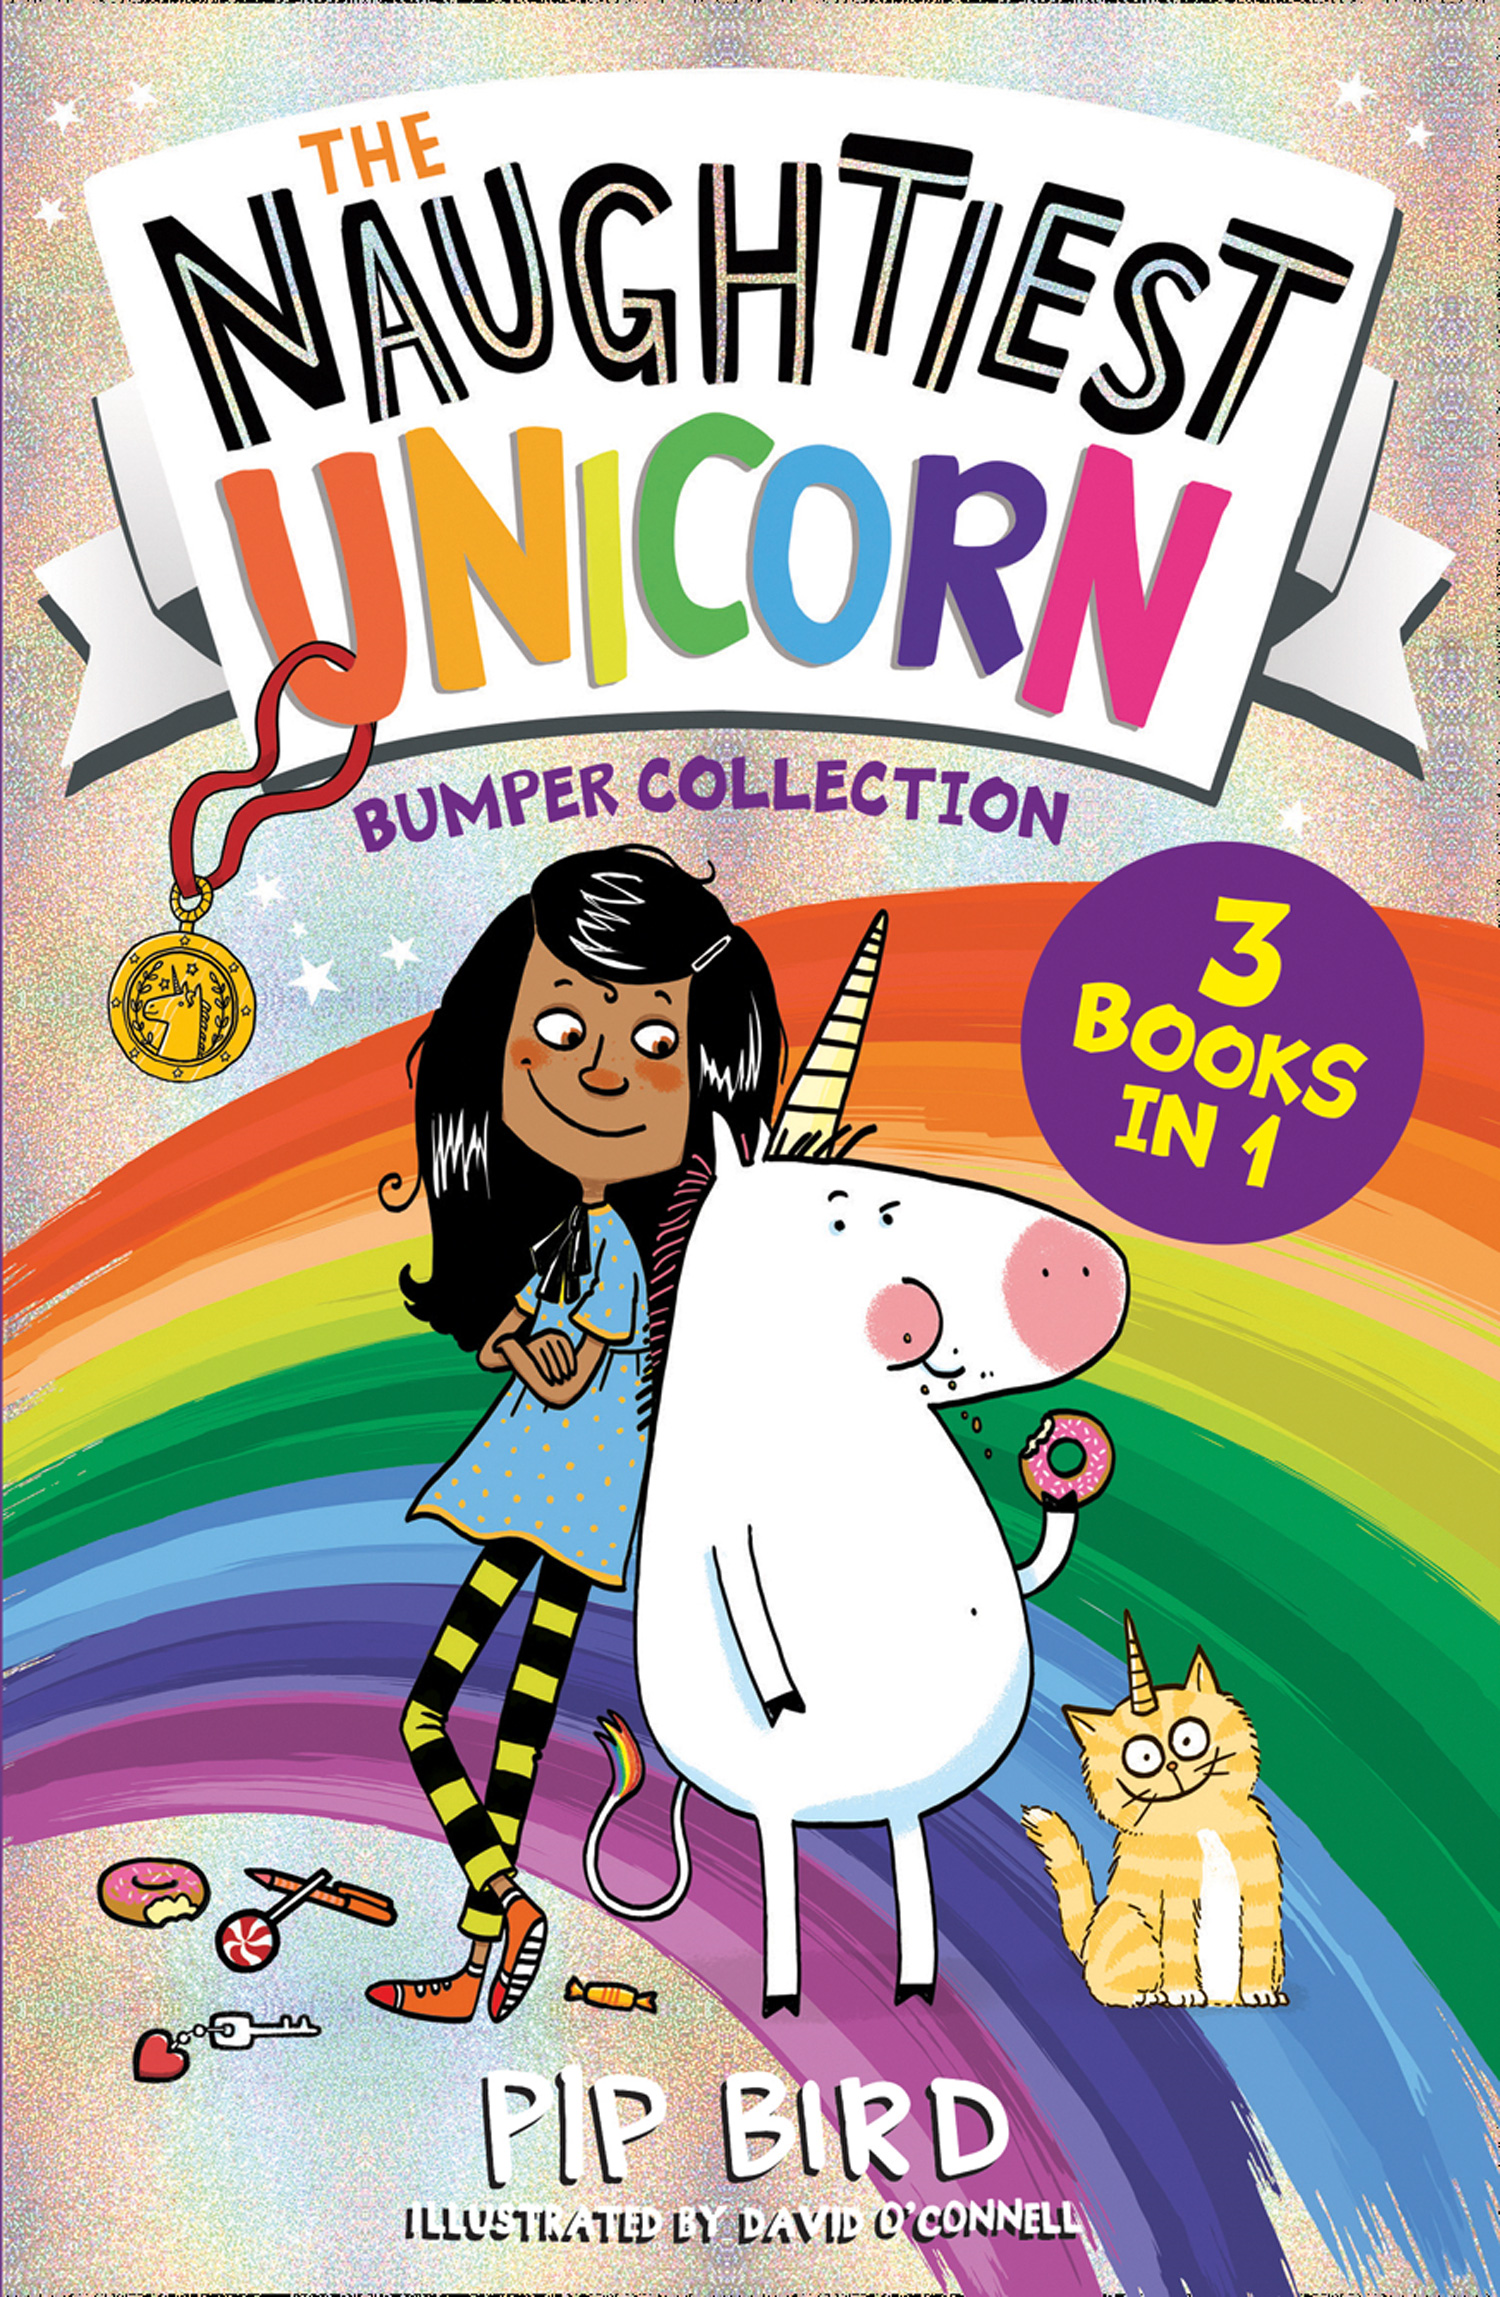 The Naughtiest Unicorn Bumper Collection (The Naughtiest Unicorn series)